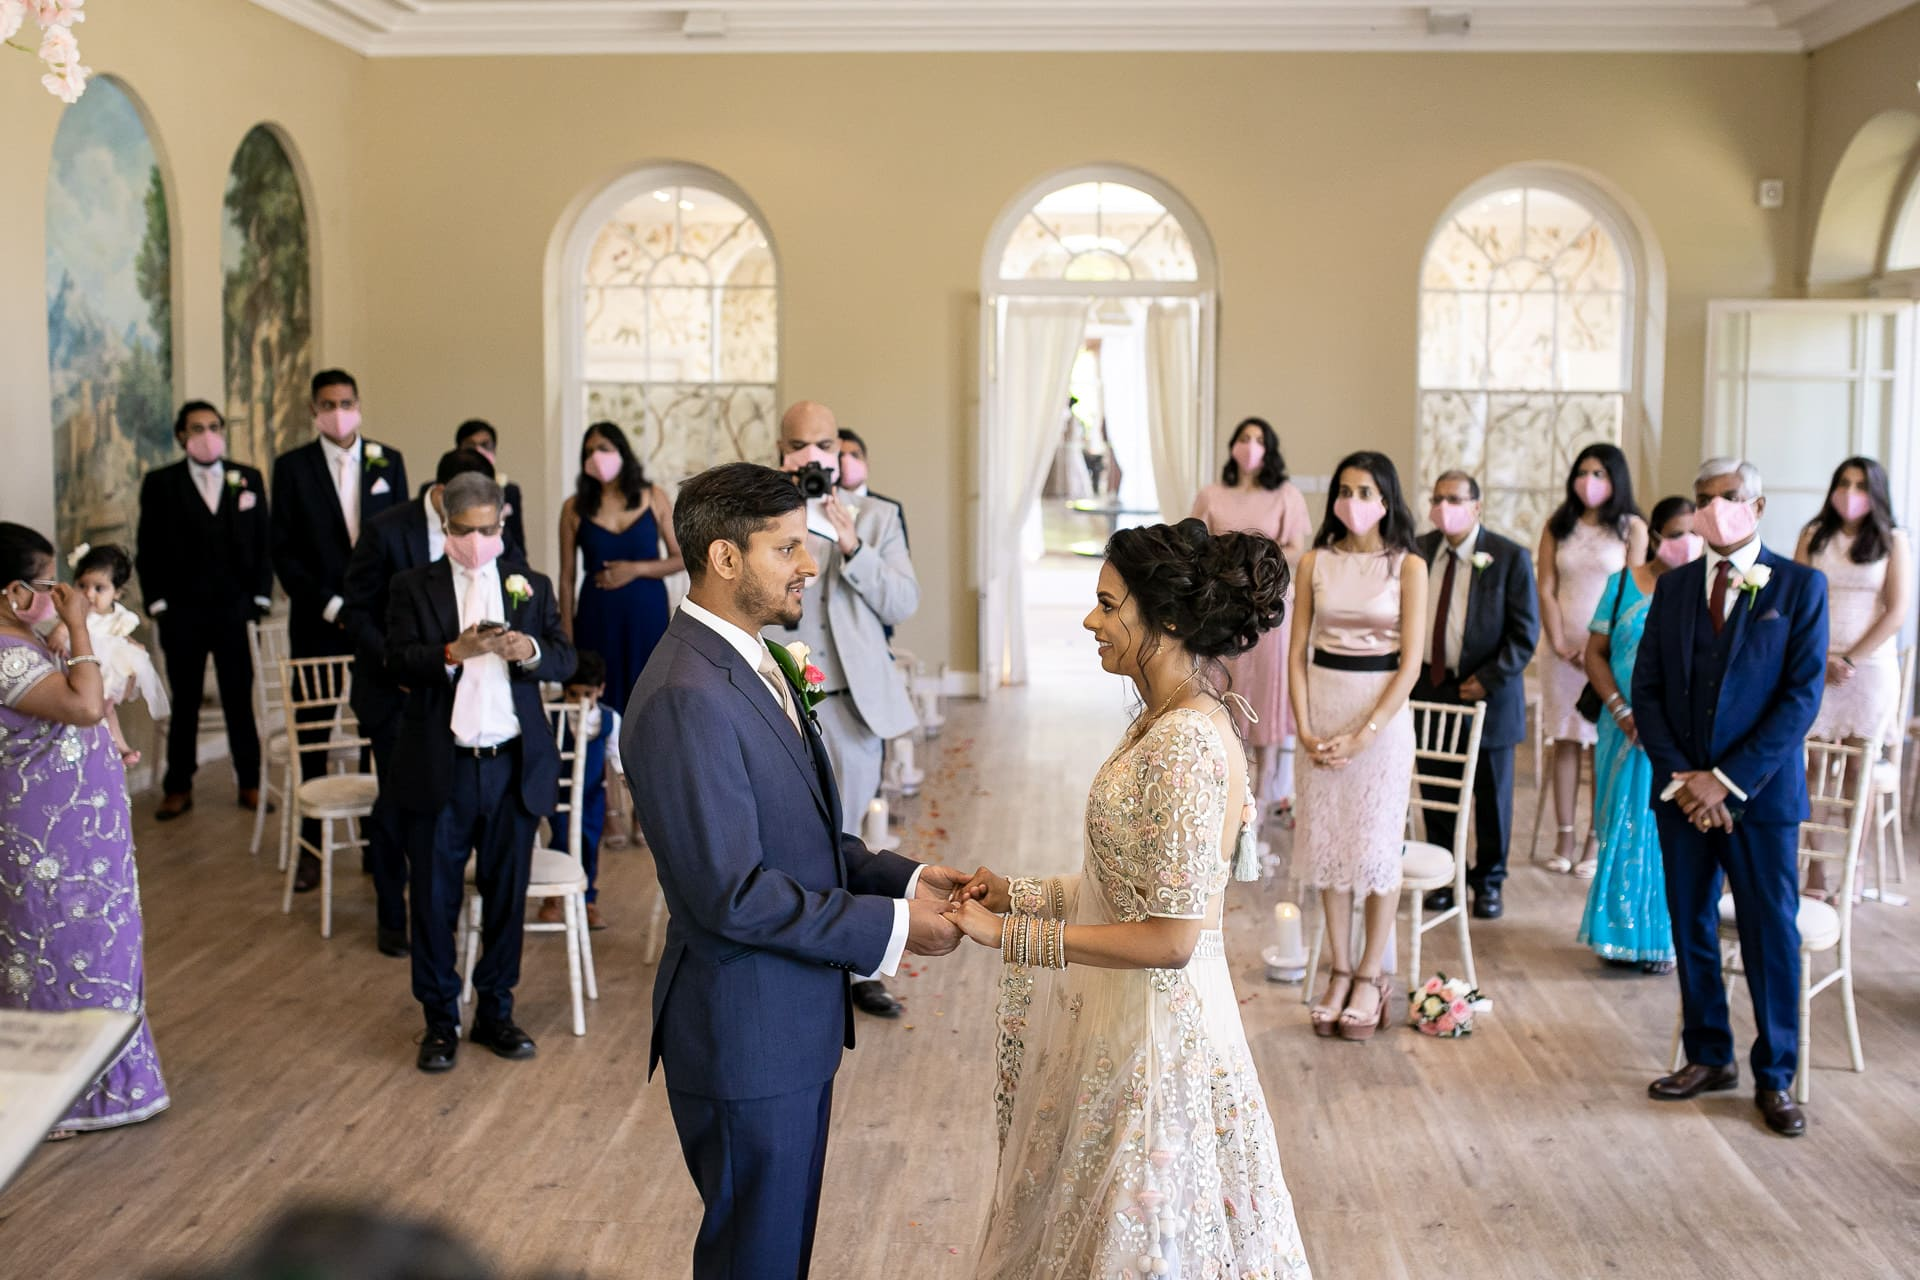 Civil wedding ceremony at Braxted Park